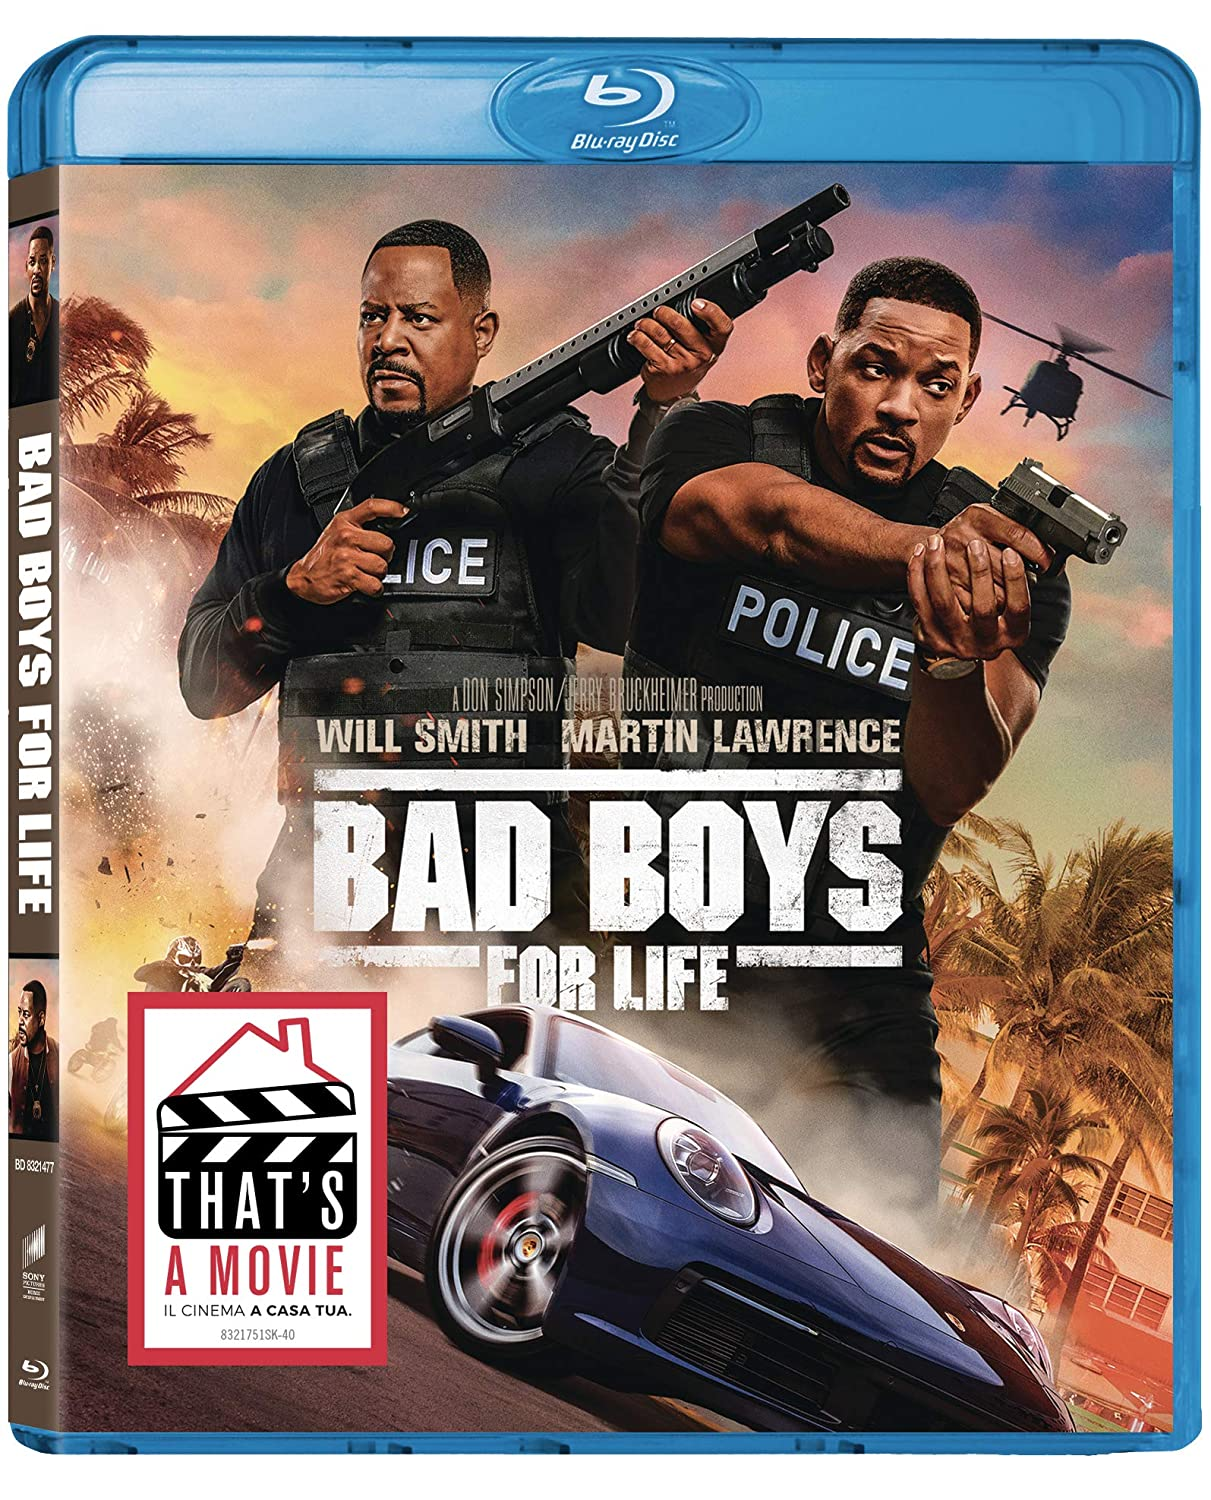 BAD BOYS FOR LIFE - BLU RAY